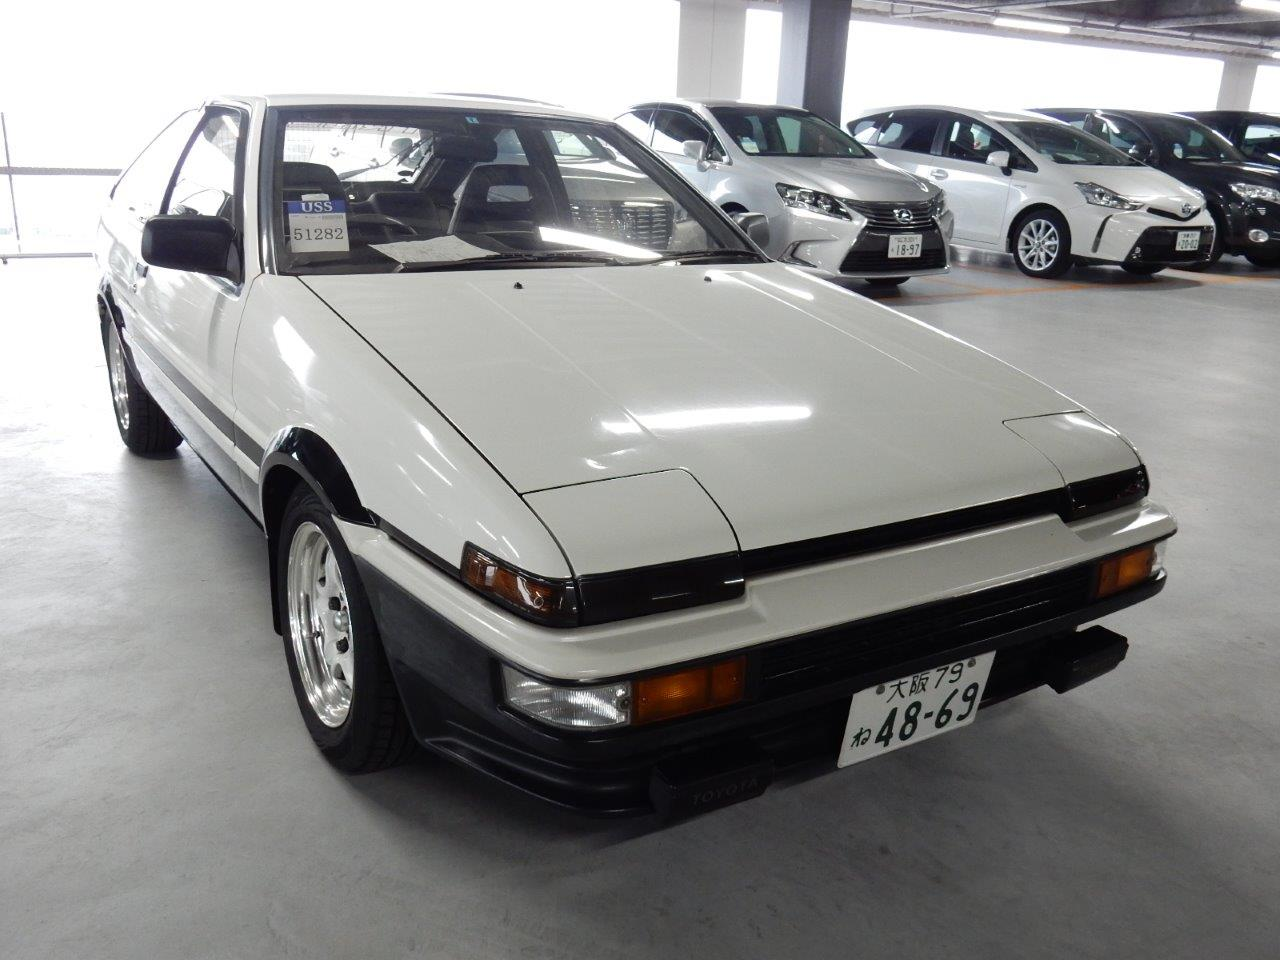 Ever Seen An Ae86 This Clean Prestige Motorsport